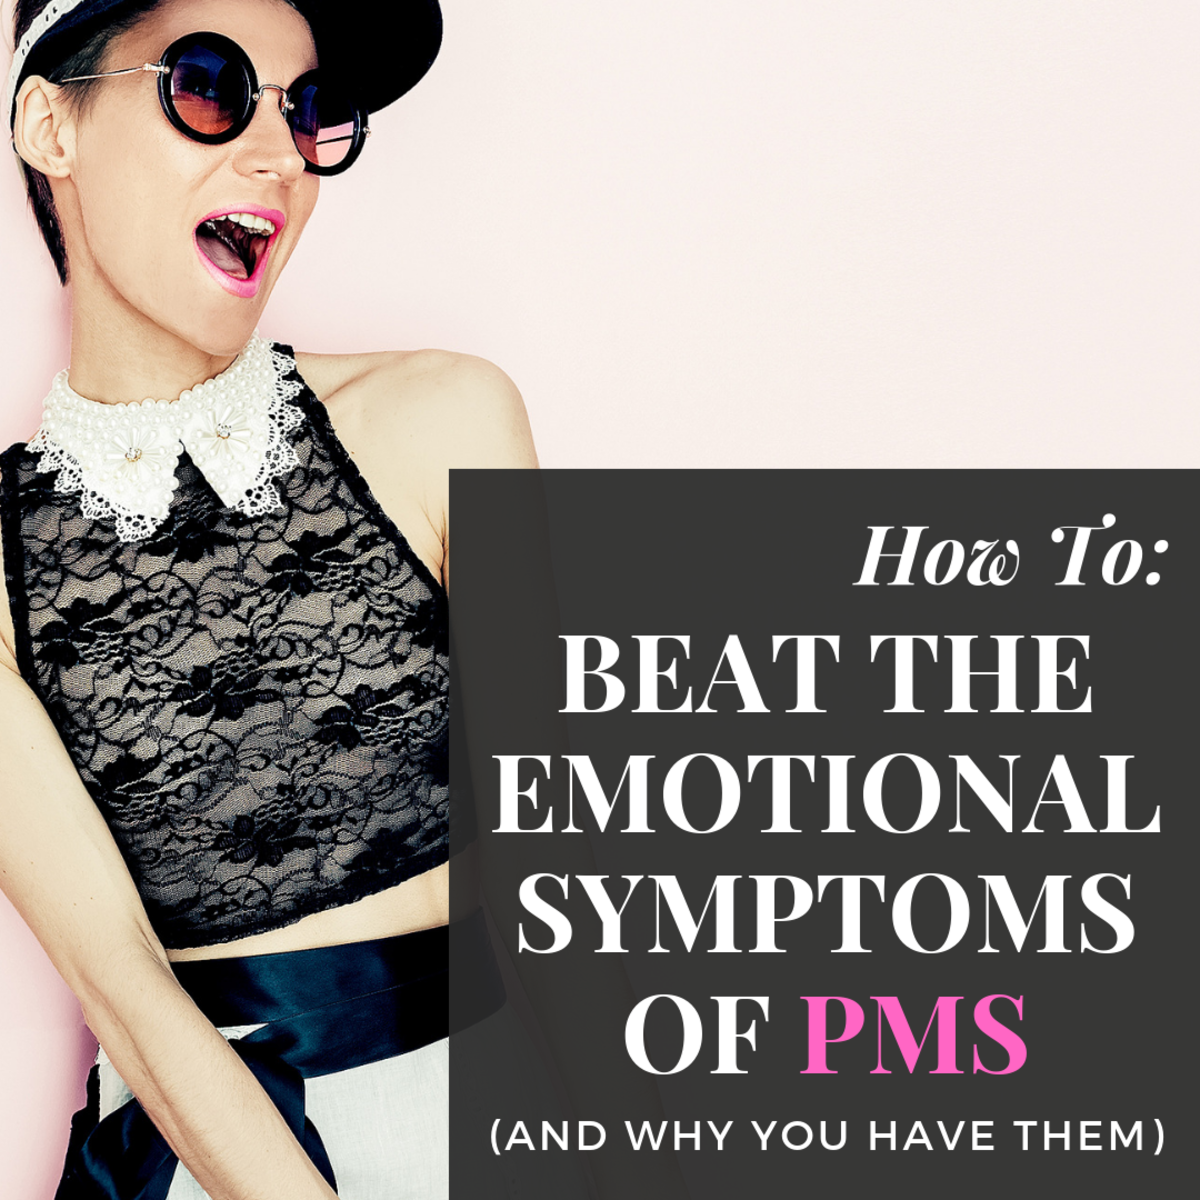 PMS can cause a variety of unpleasant emotional symptoms. Here's everything you need to know about why PMS can make you miserable and what you can do about it!